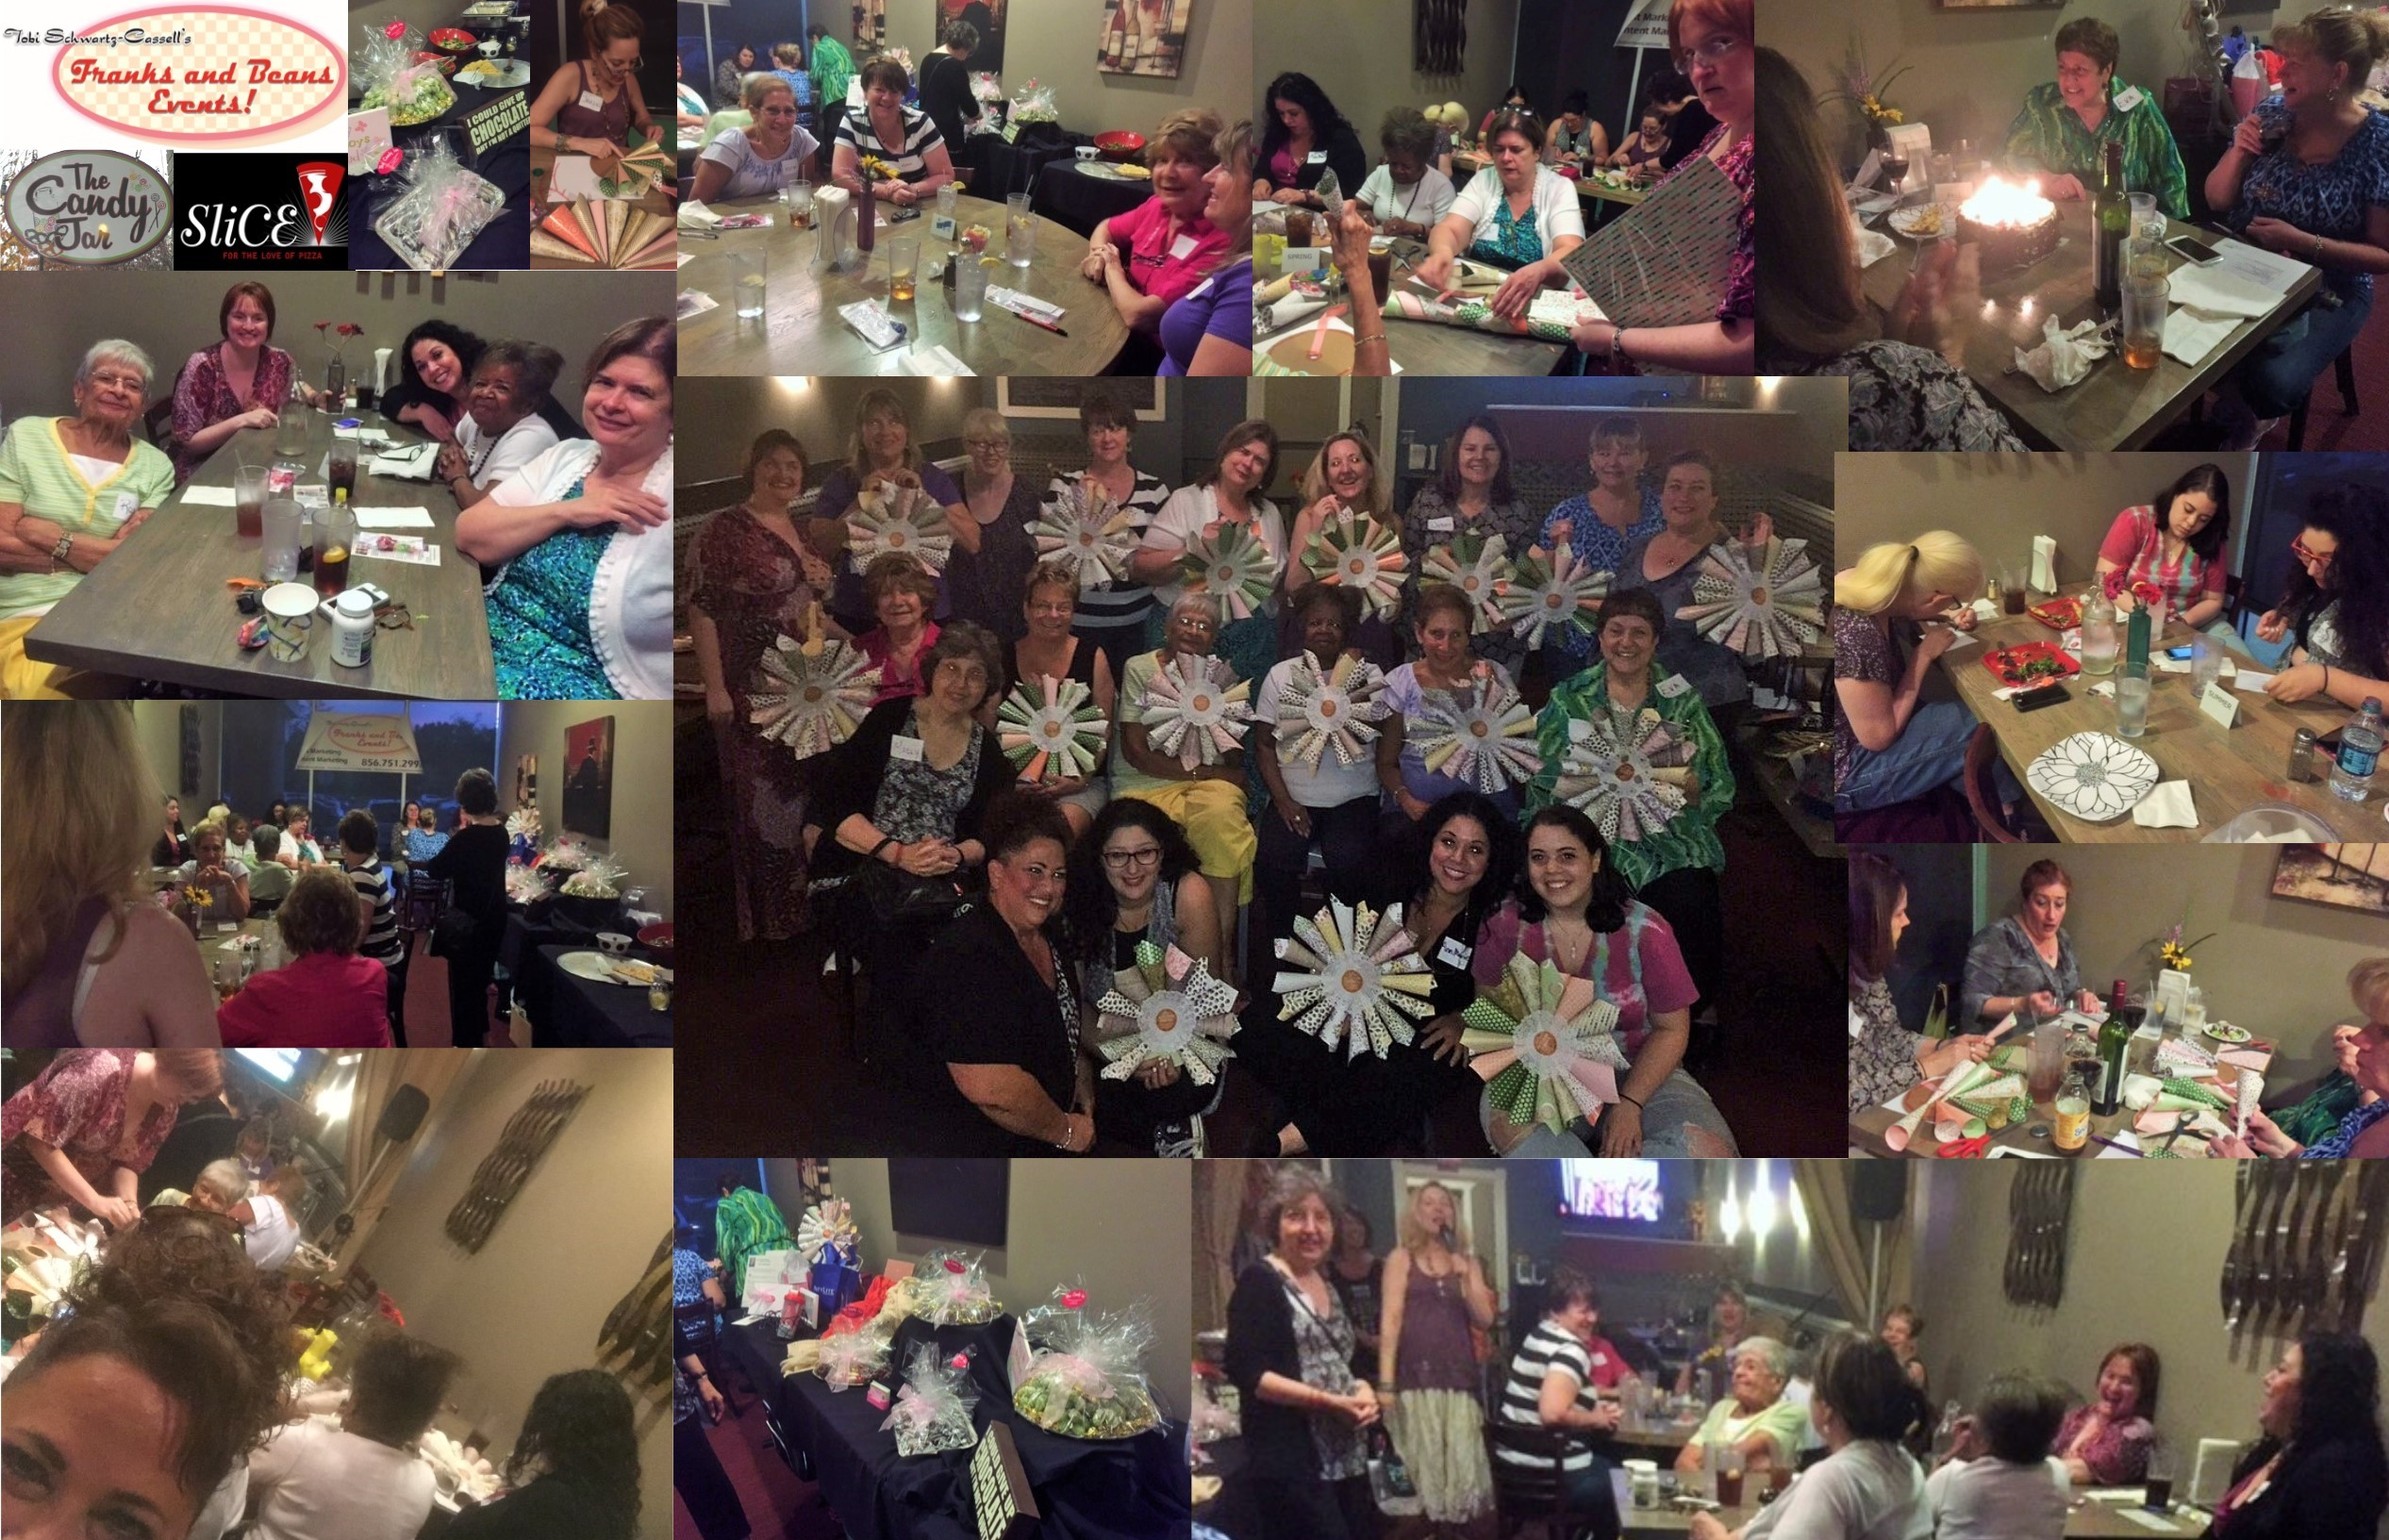 Such cute wreaths! Designer Instructor Amy Ettelson led this fun Crafting Dinner. Lots of fun, friendship and delicious food plus prizes and a Chocolate Buffet from sponsor The Candy Jar of Collingswood.